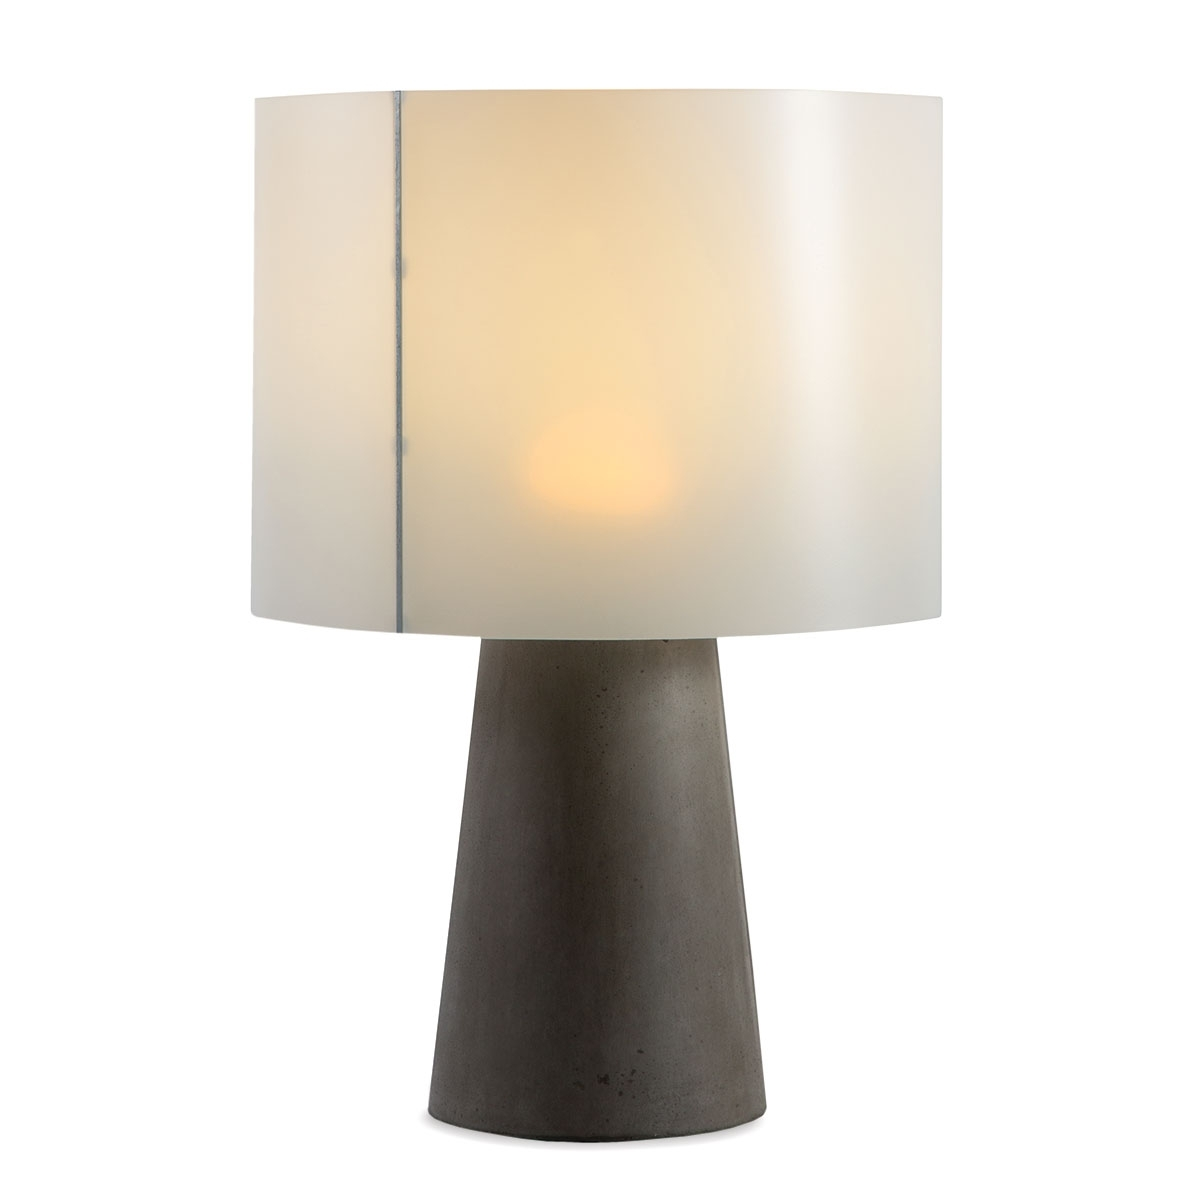 Latest Living Room Table Lamps At Target In Lamp : Outdoor Cordless Concrete Table Lamp Dark Gray Items Creation (View 6 of 15)